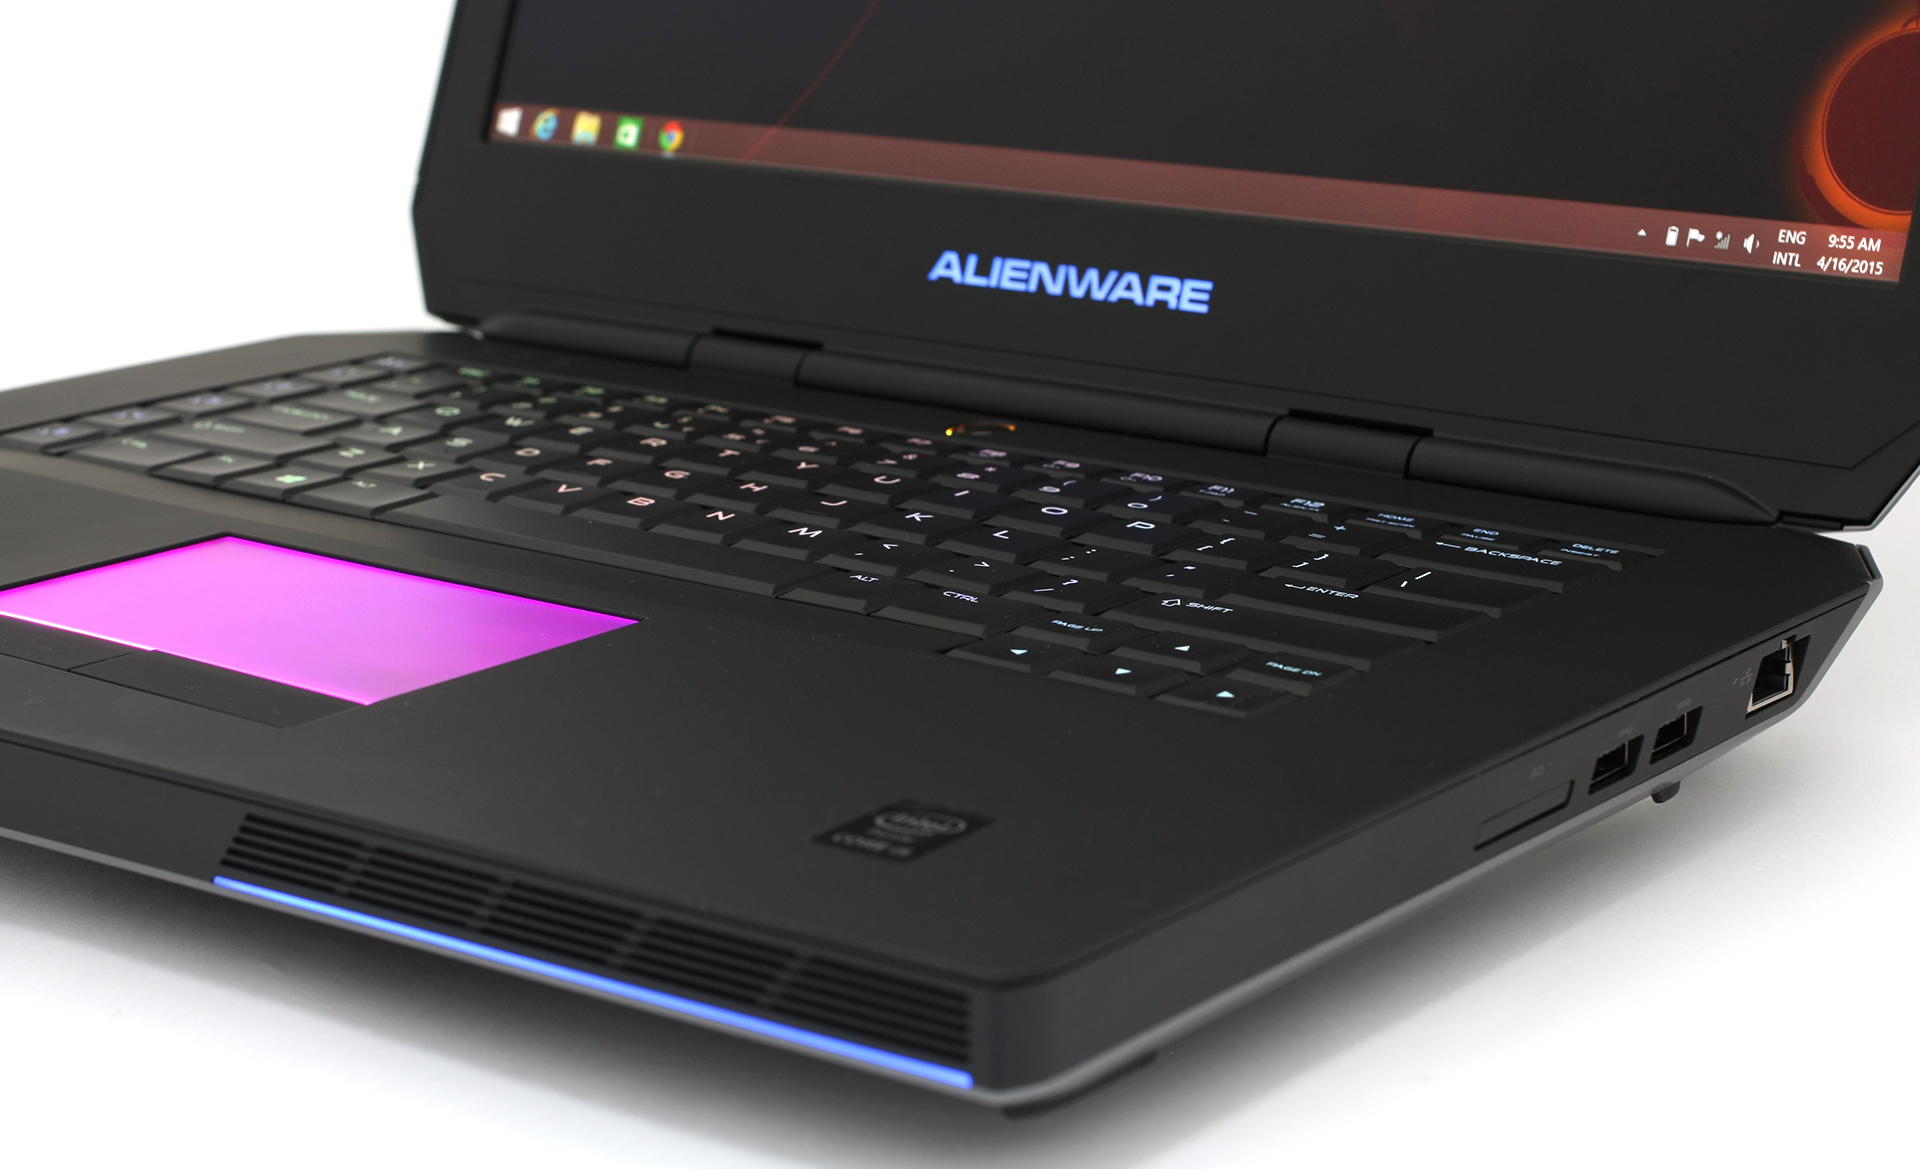 Dell Alienware 15 Early 2015 Review This Machine